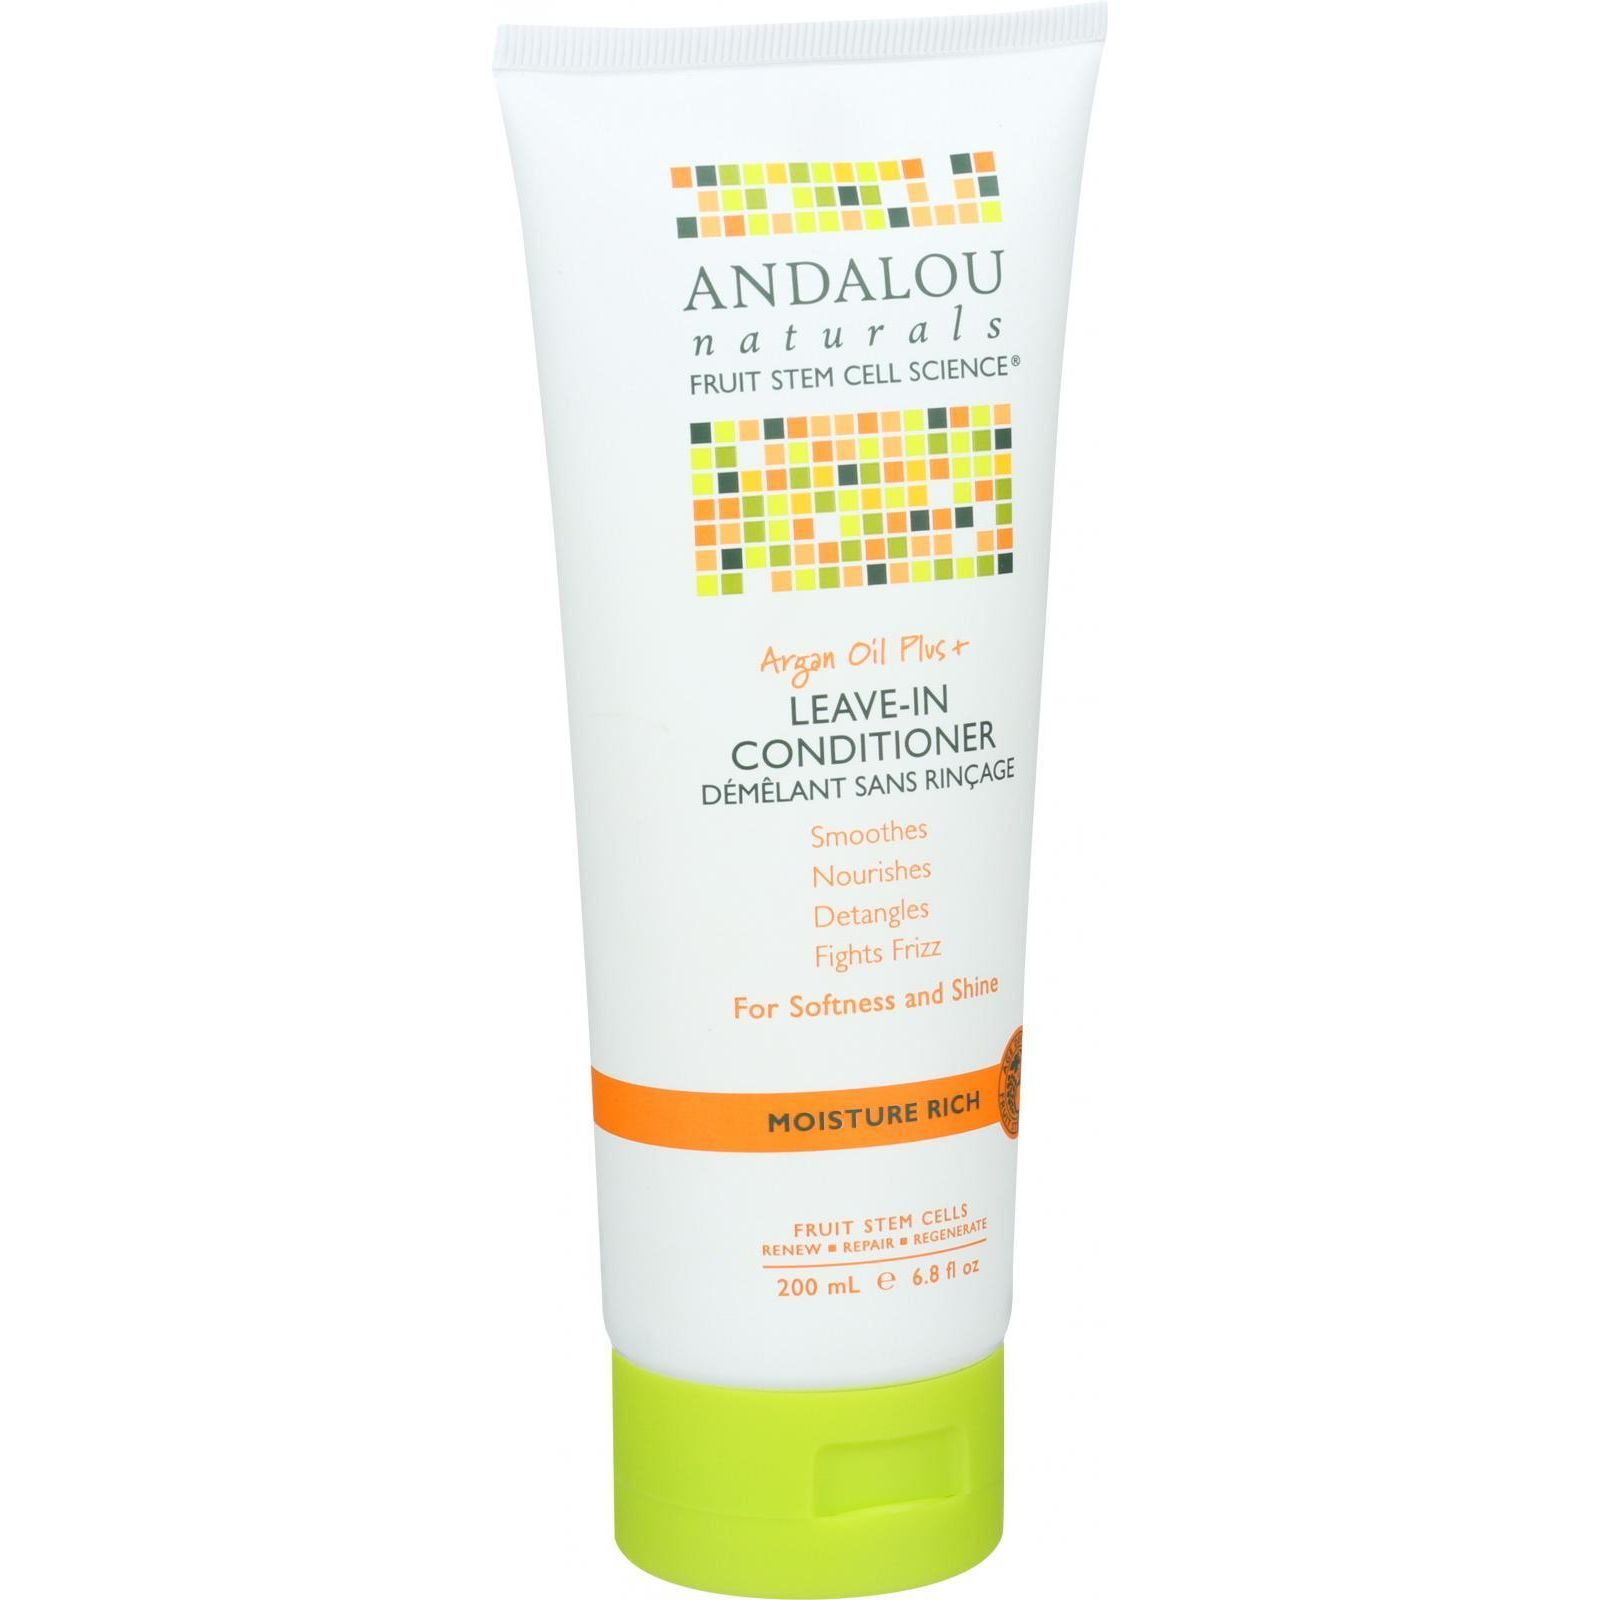 Andalou Naturals Conditioner  Moisture Rich Leave In  Argan Oil Plus  6.8 oz